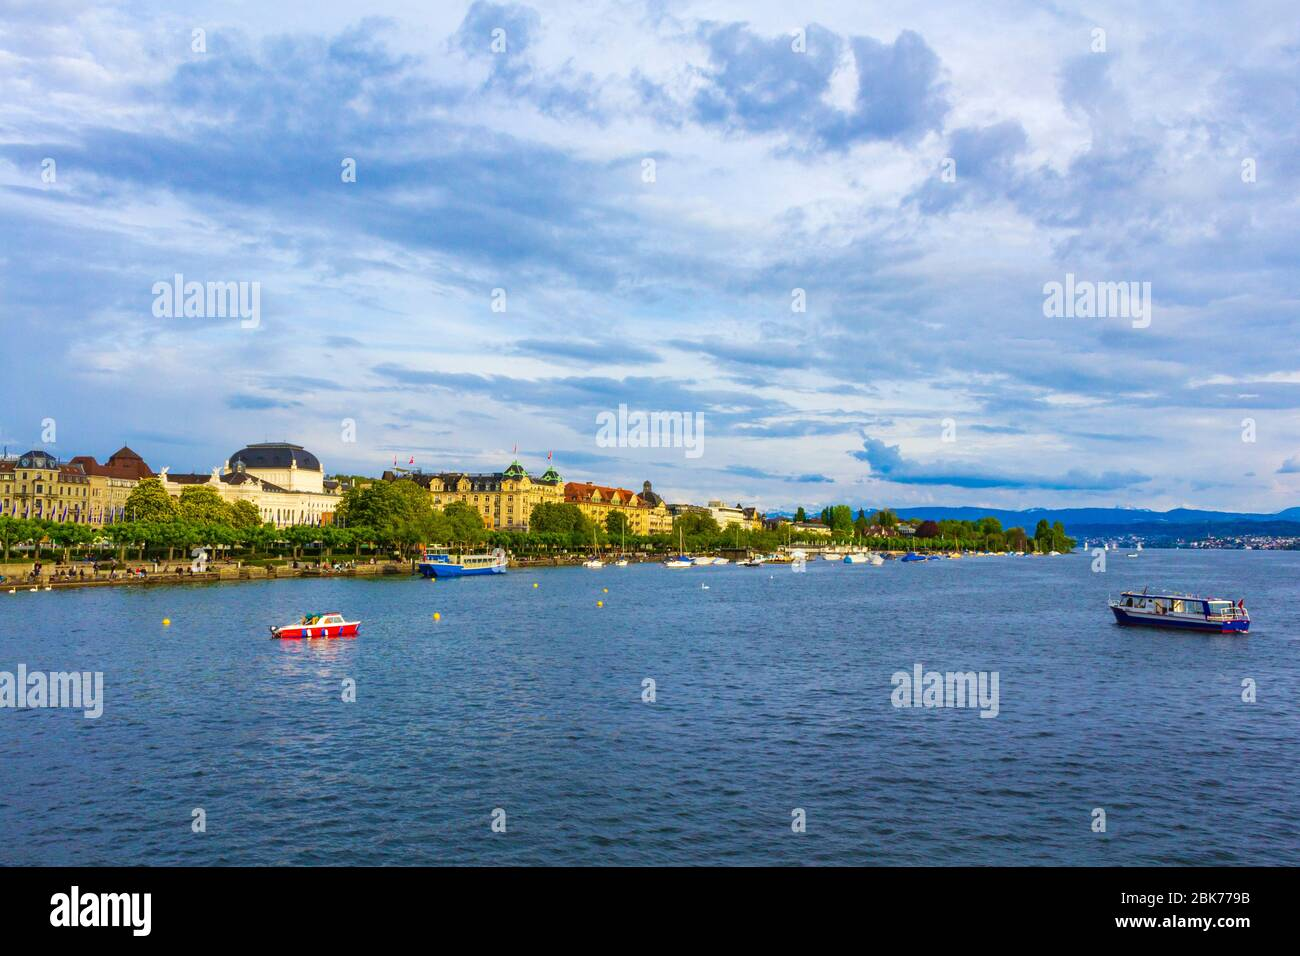 Scenic view of Lake Zürich or Zürichsee -a lake in Switzerland, extending southeast of the city of Zürich. Stock Photo